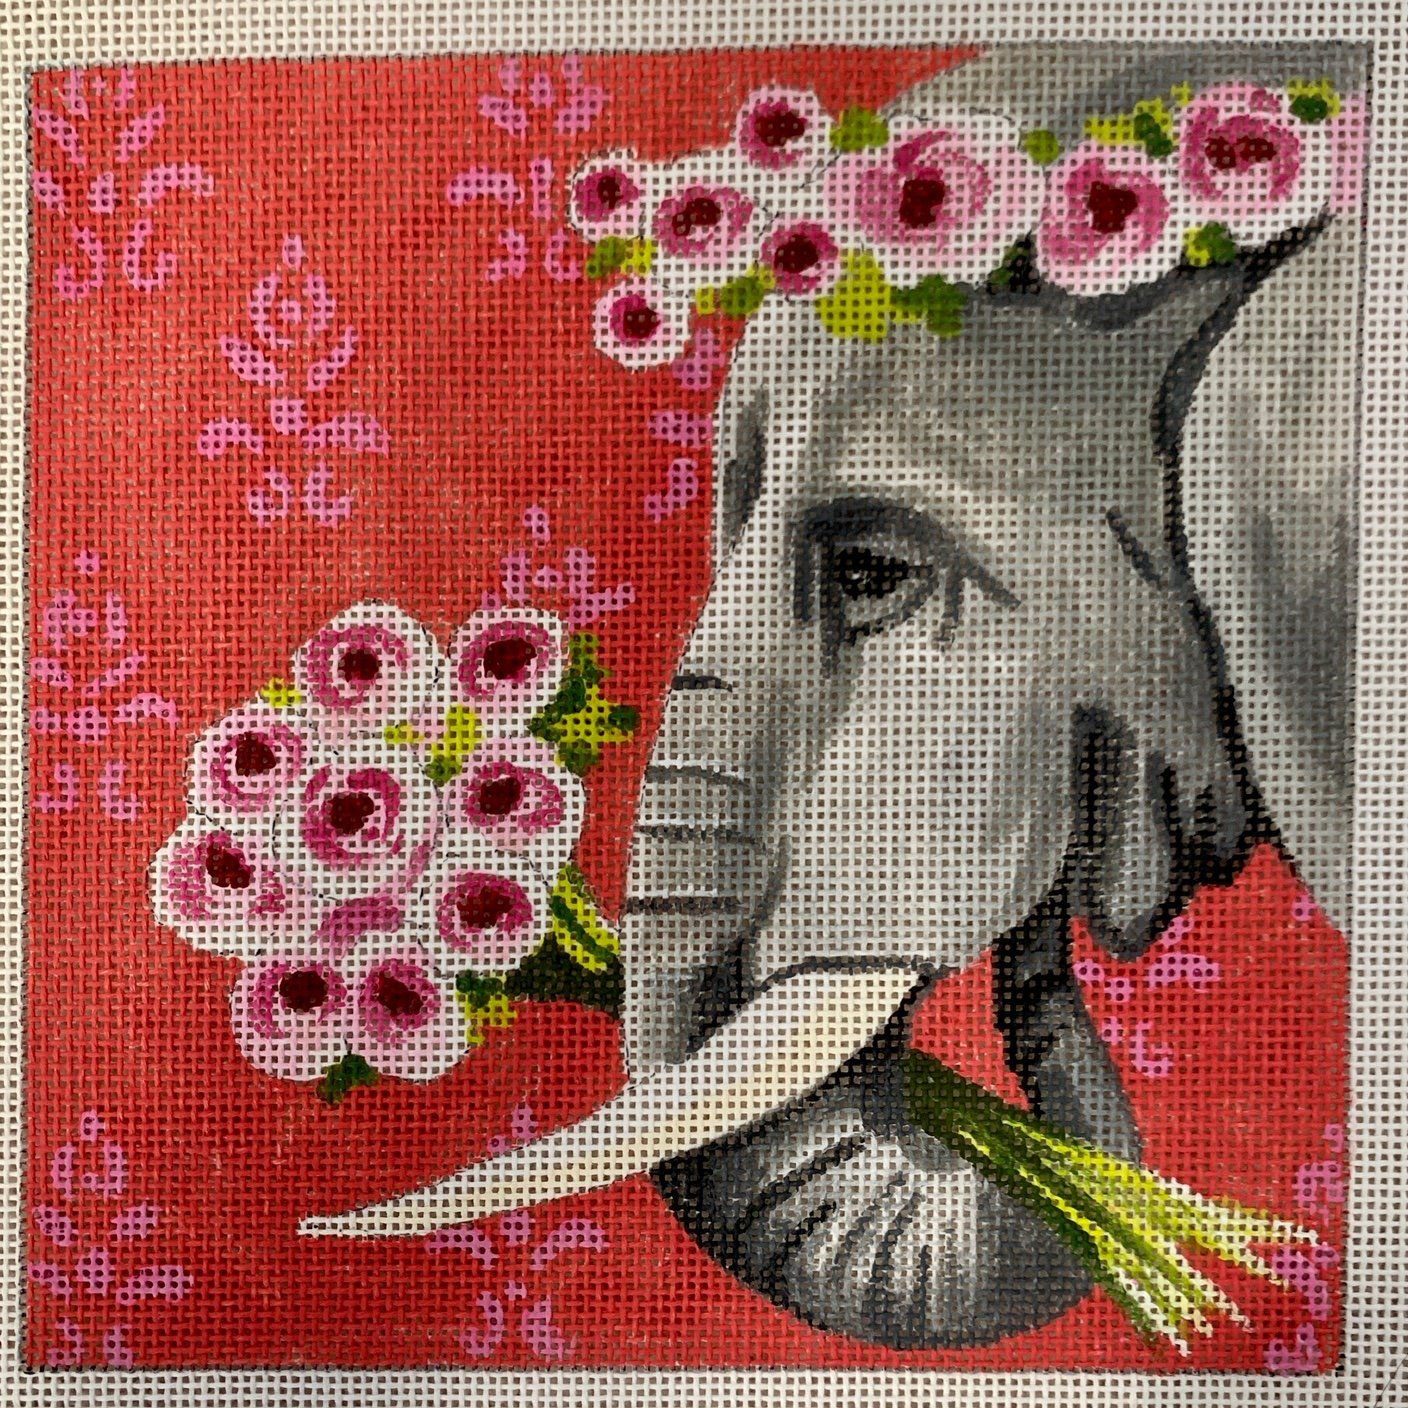 IN264 Elephant with Roses